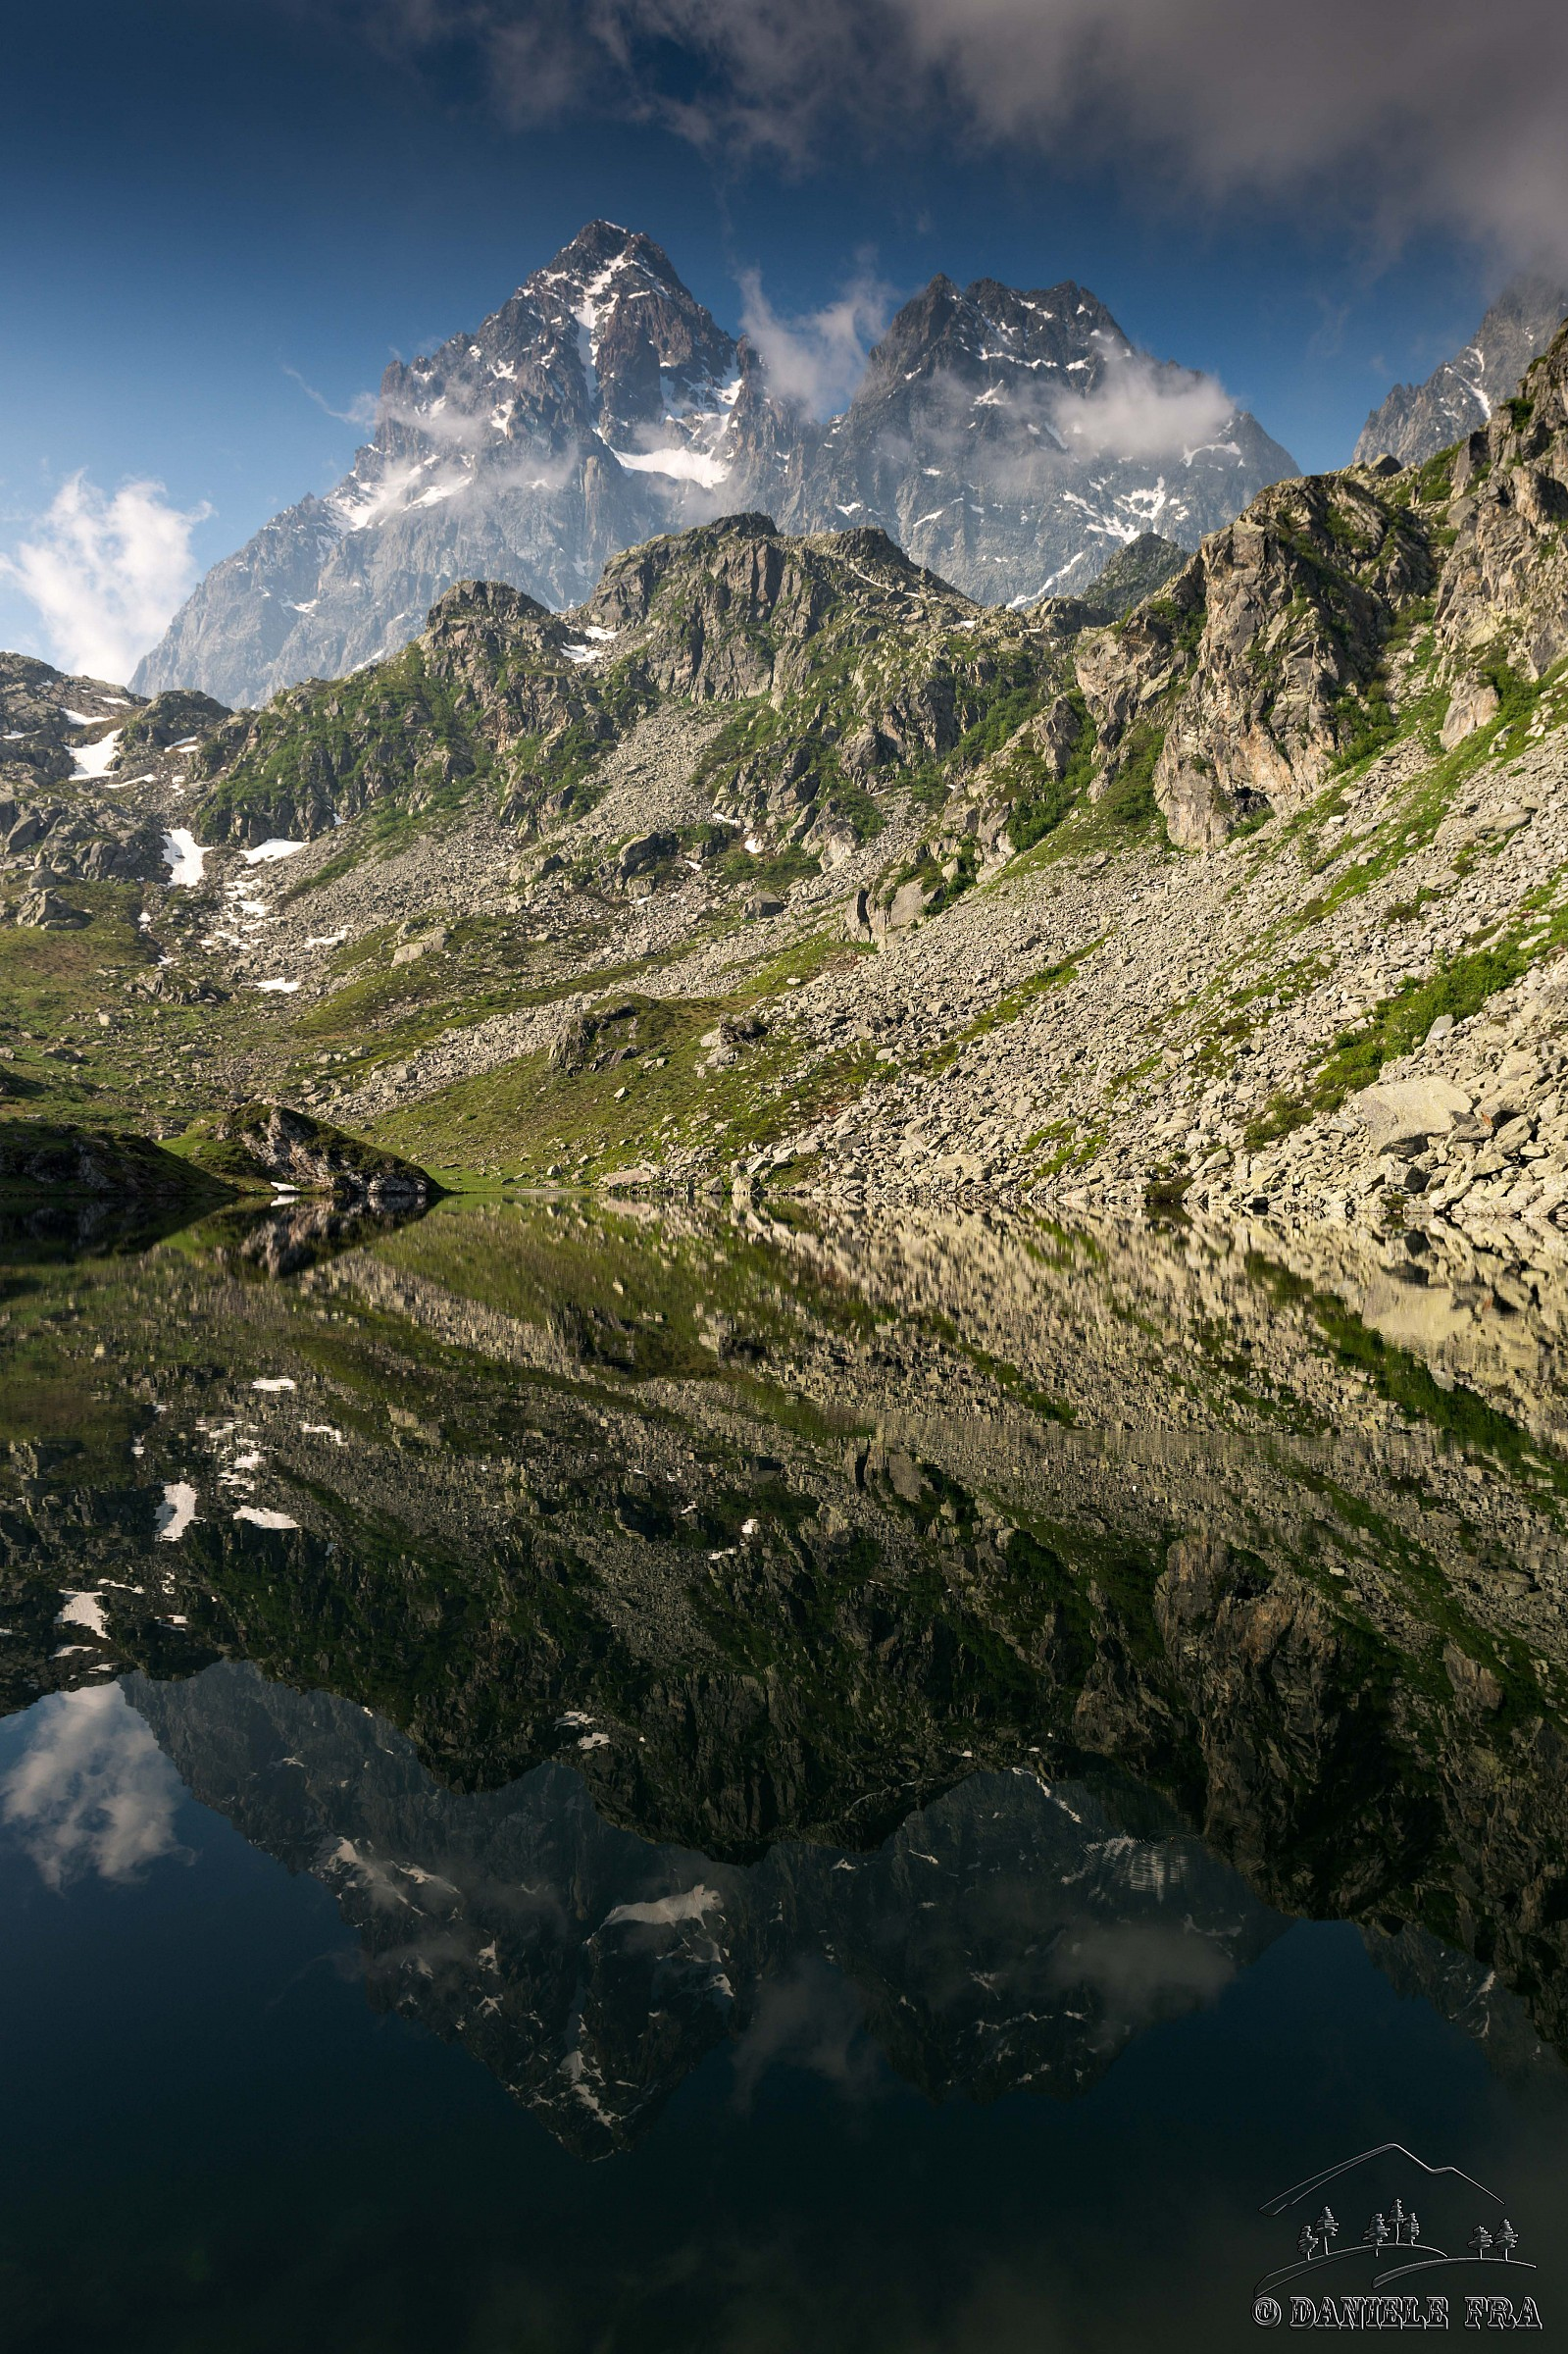 The King of Stone is reflected in Lake Fiorenza...